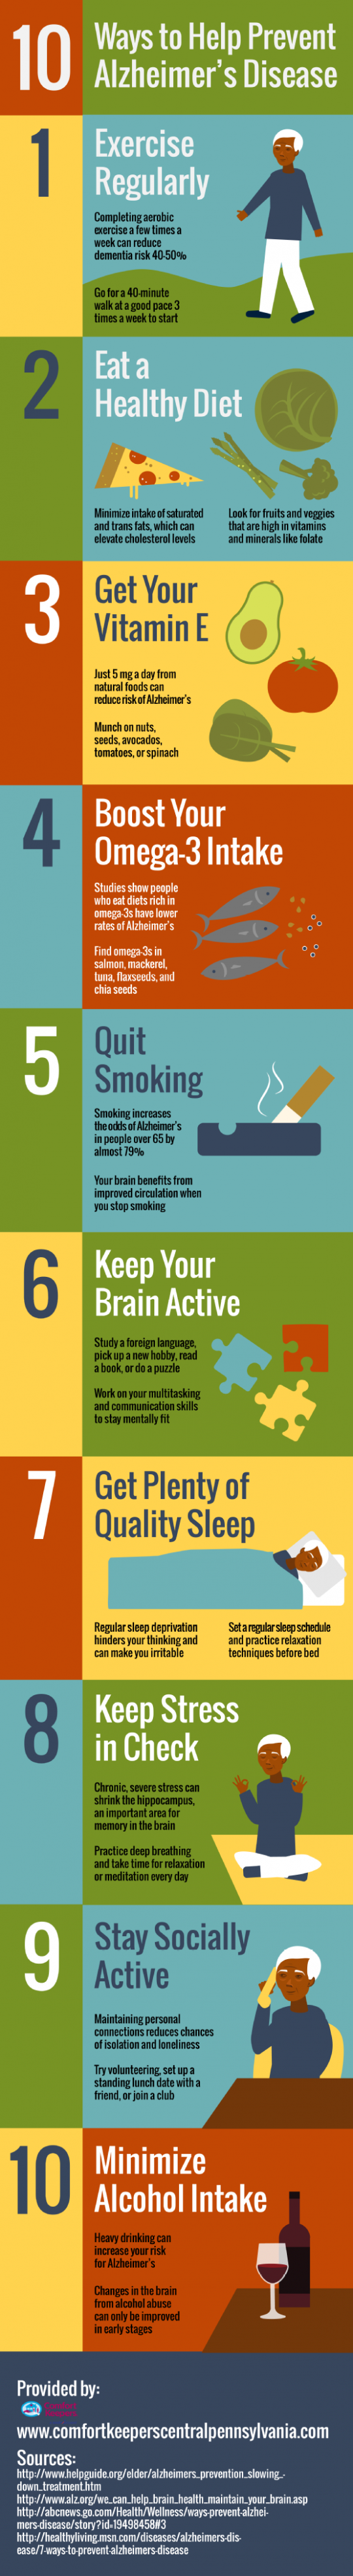 10 Ways to Help Prevent Alzheimer�s Disease